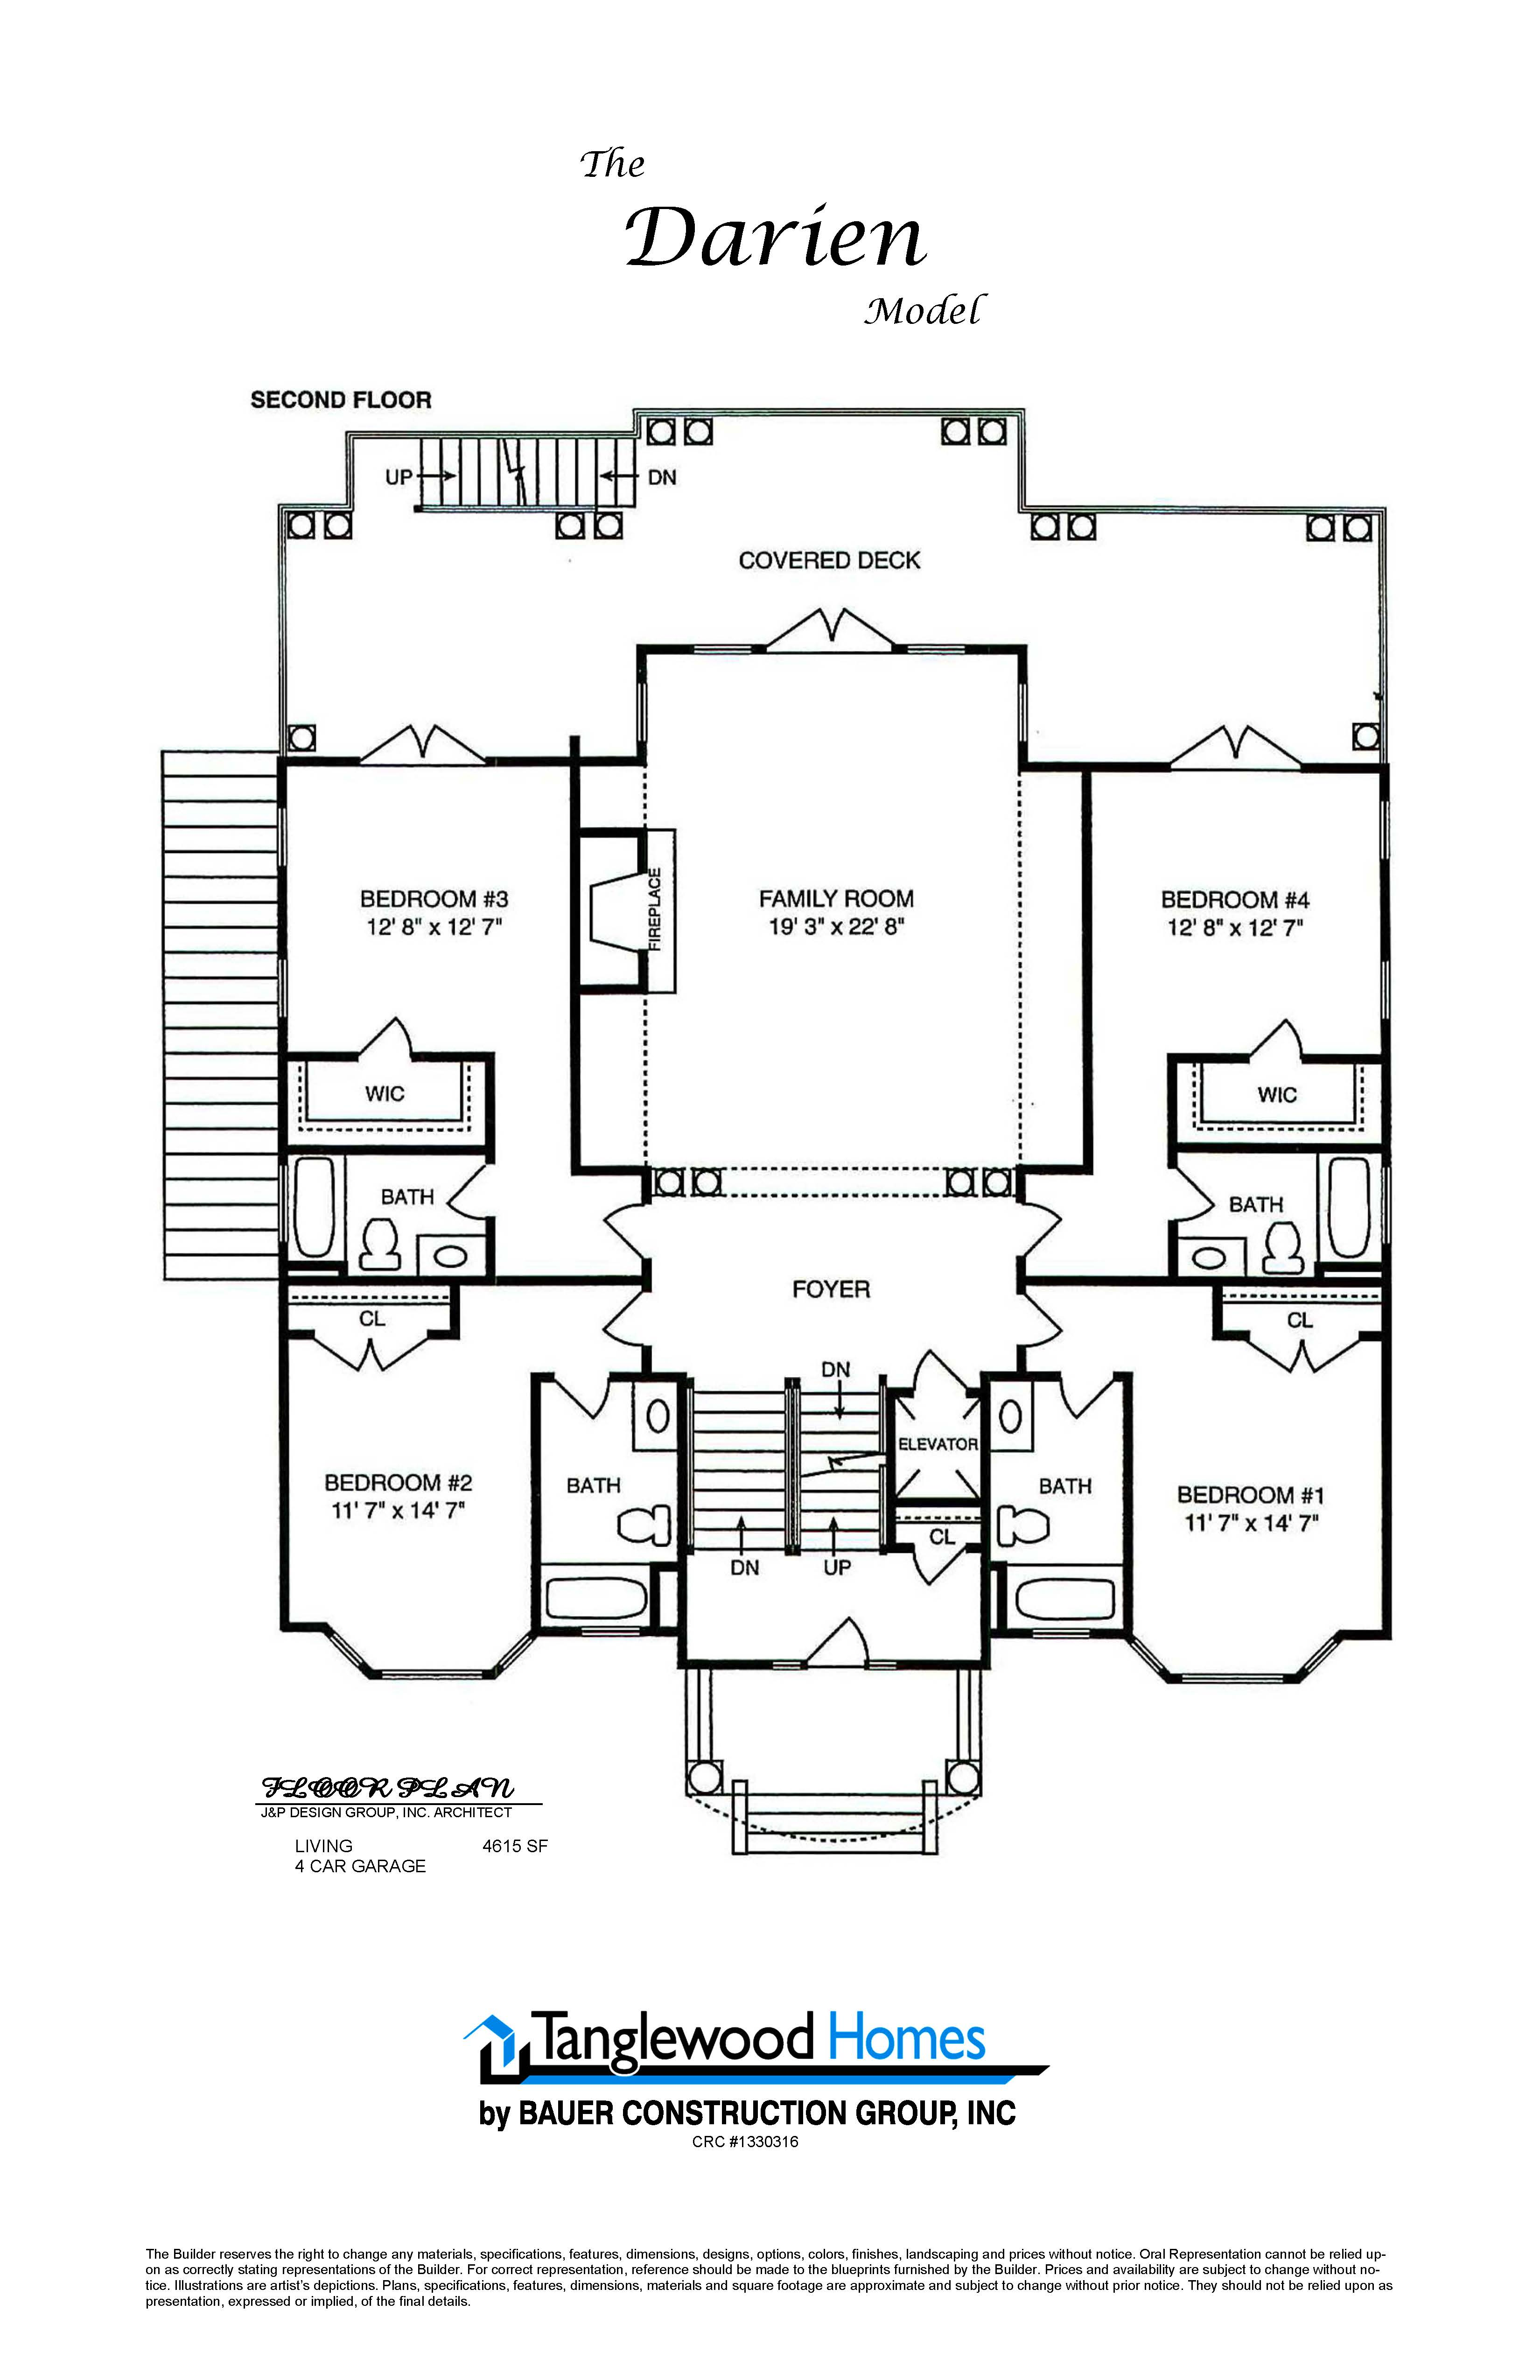 Home Construction Plans Darien In Fort Myers Fl